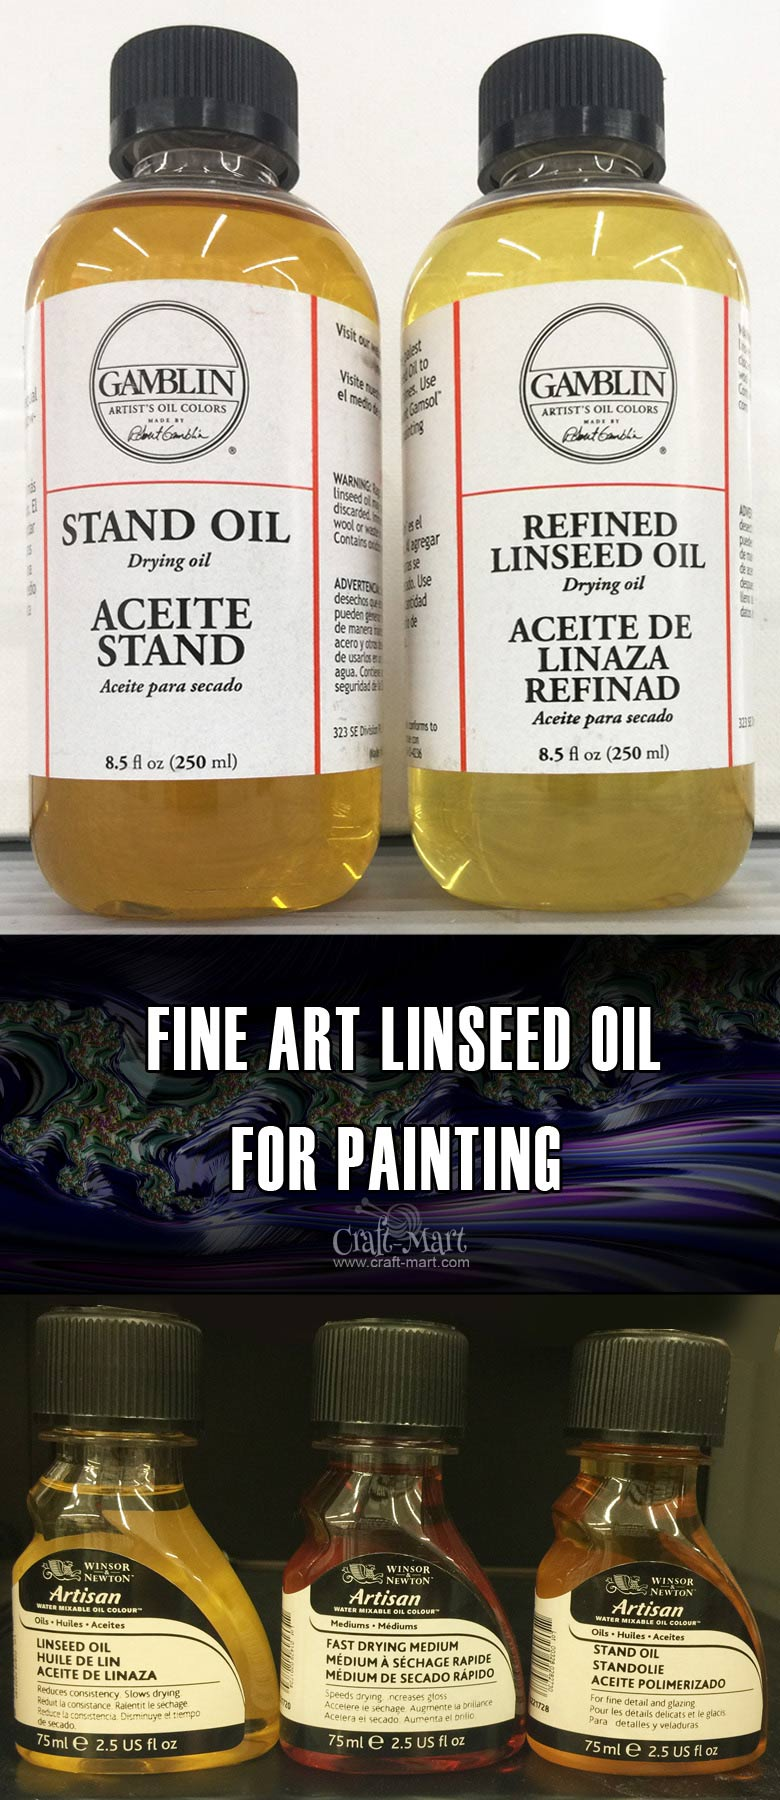 Use linseed oil for fine art painting and acrylic pouring recipes